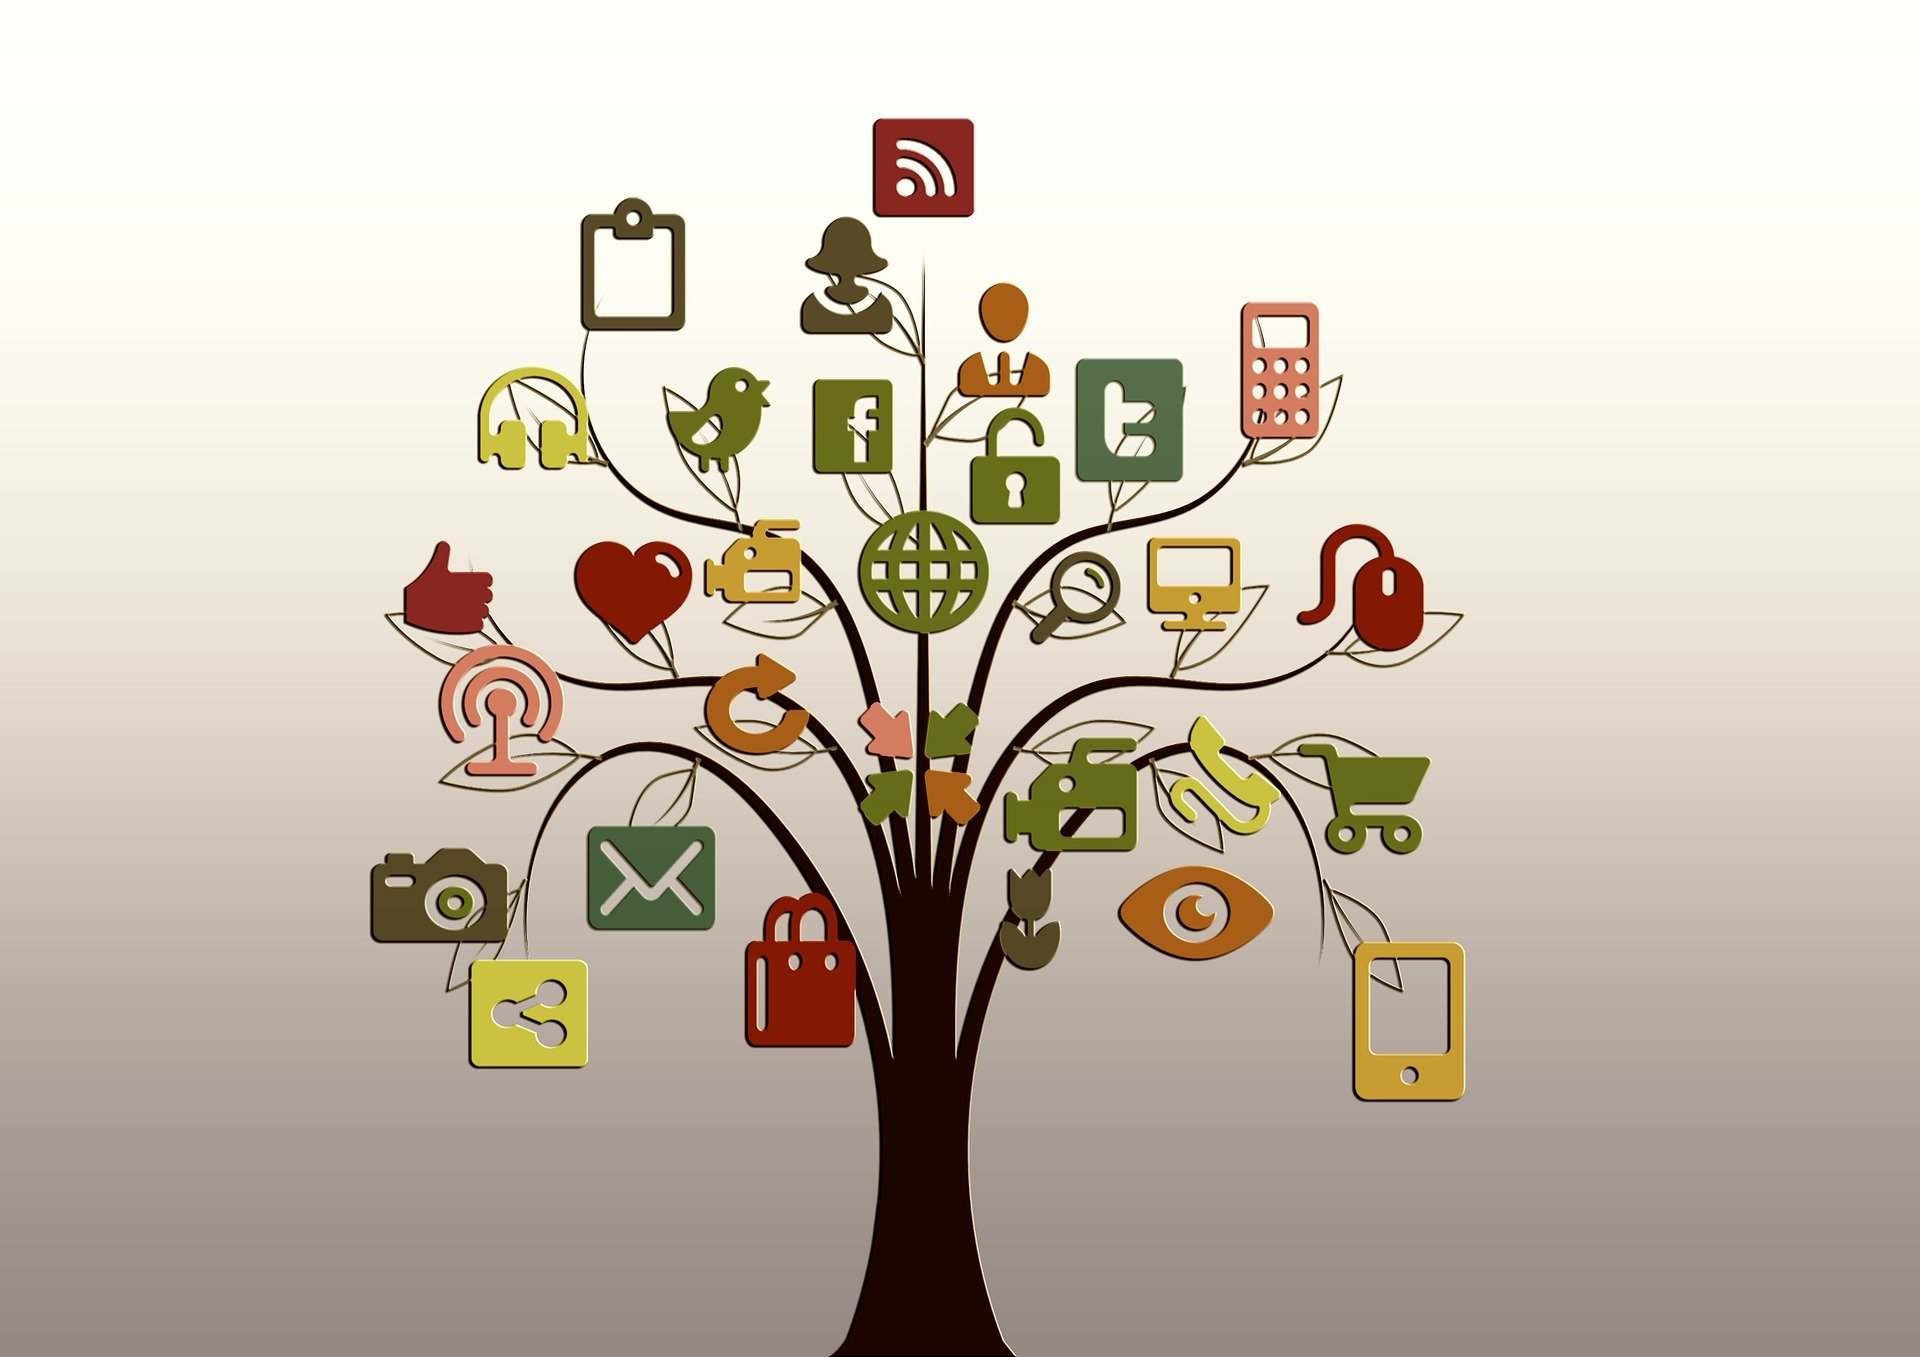 Illustration of a tree bearing website and social media icons.